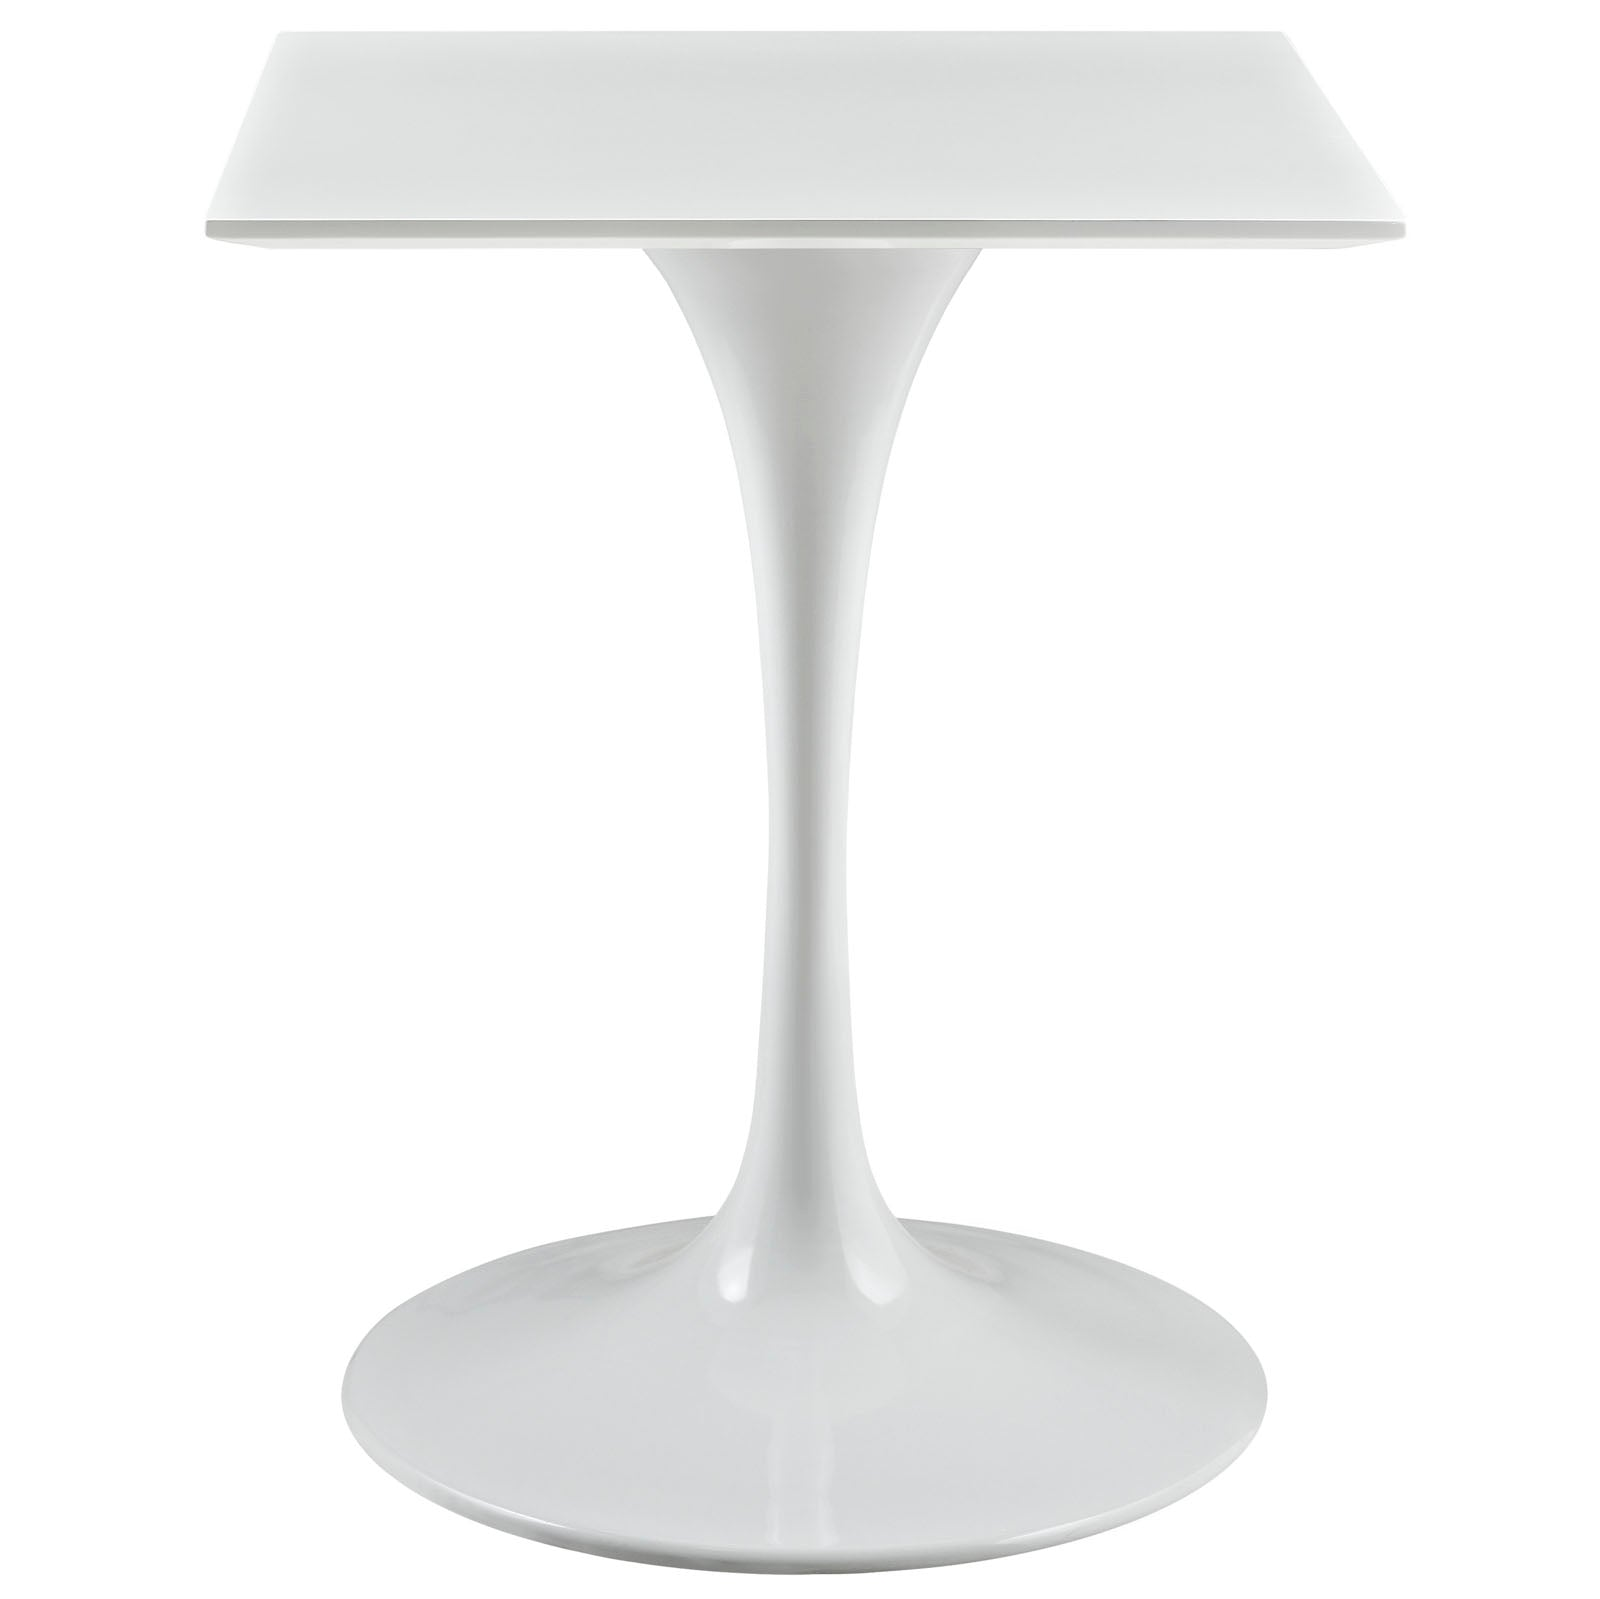 "Lippa 24"" Square Wood Top Dining Table in White by Modway"